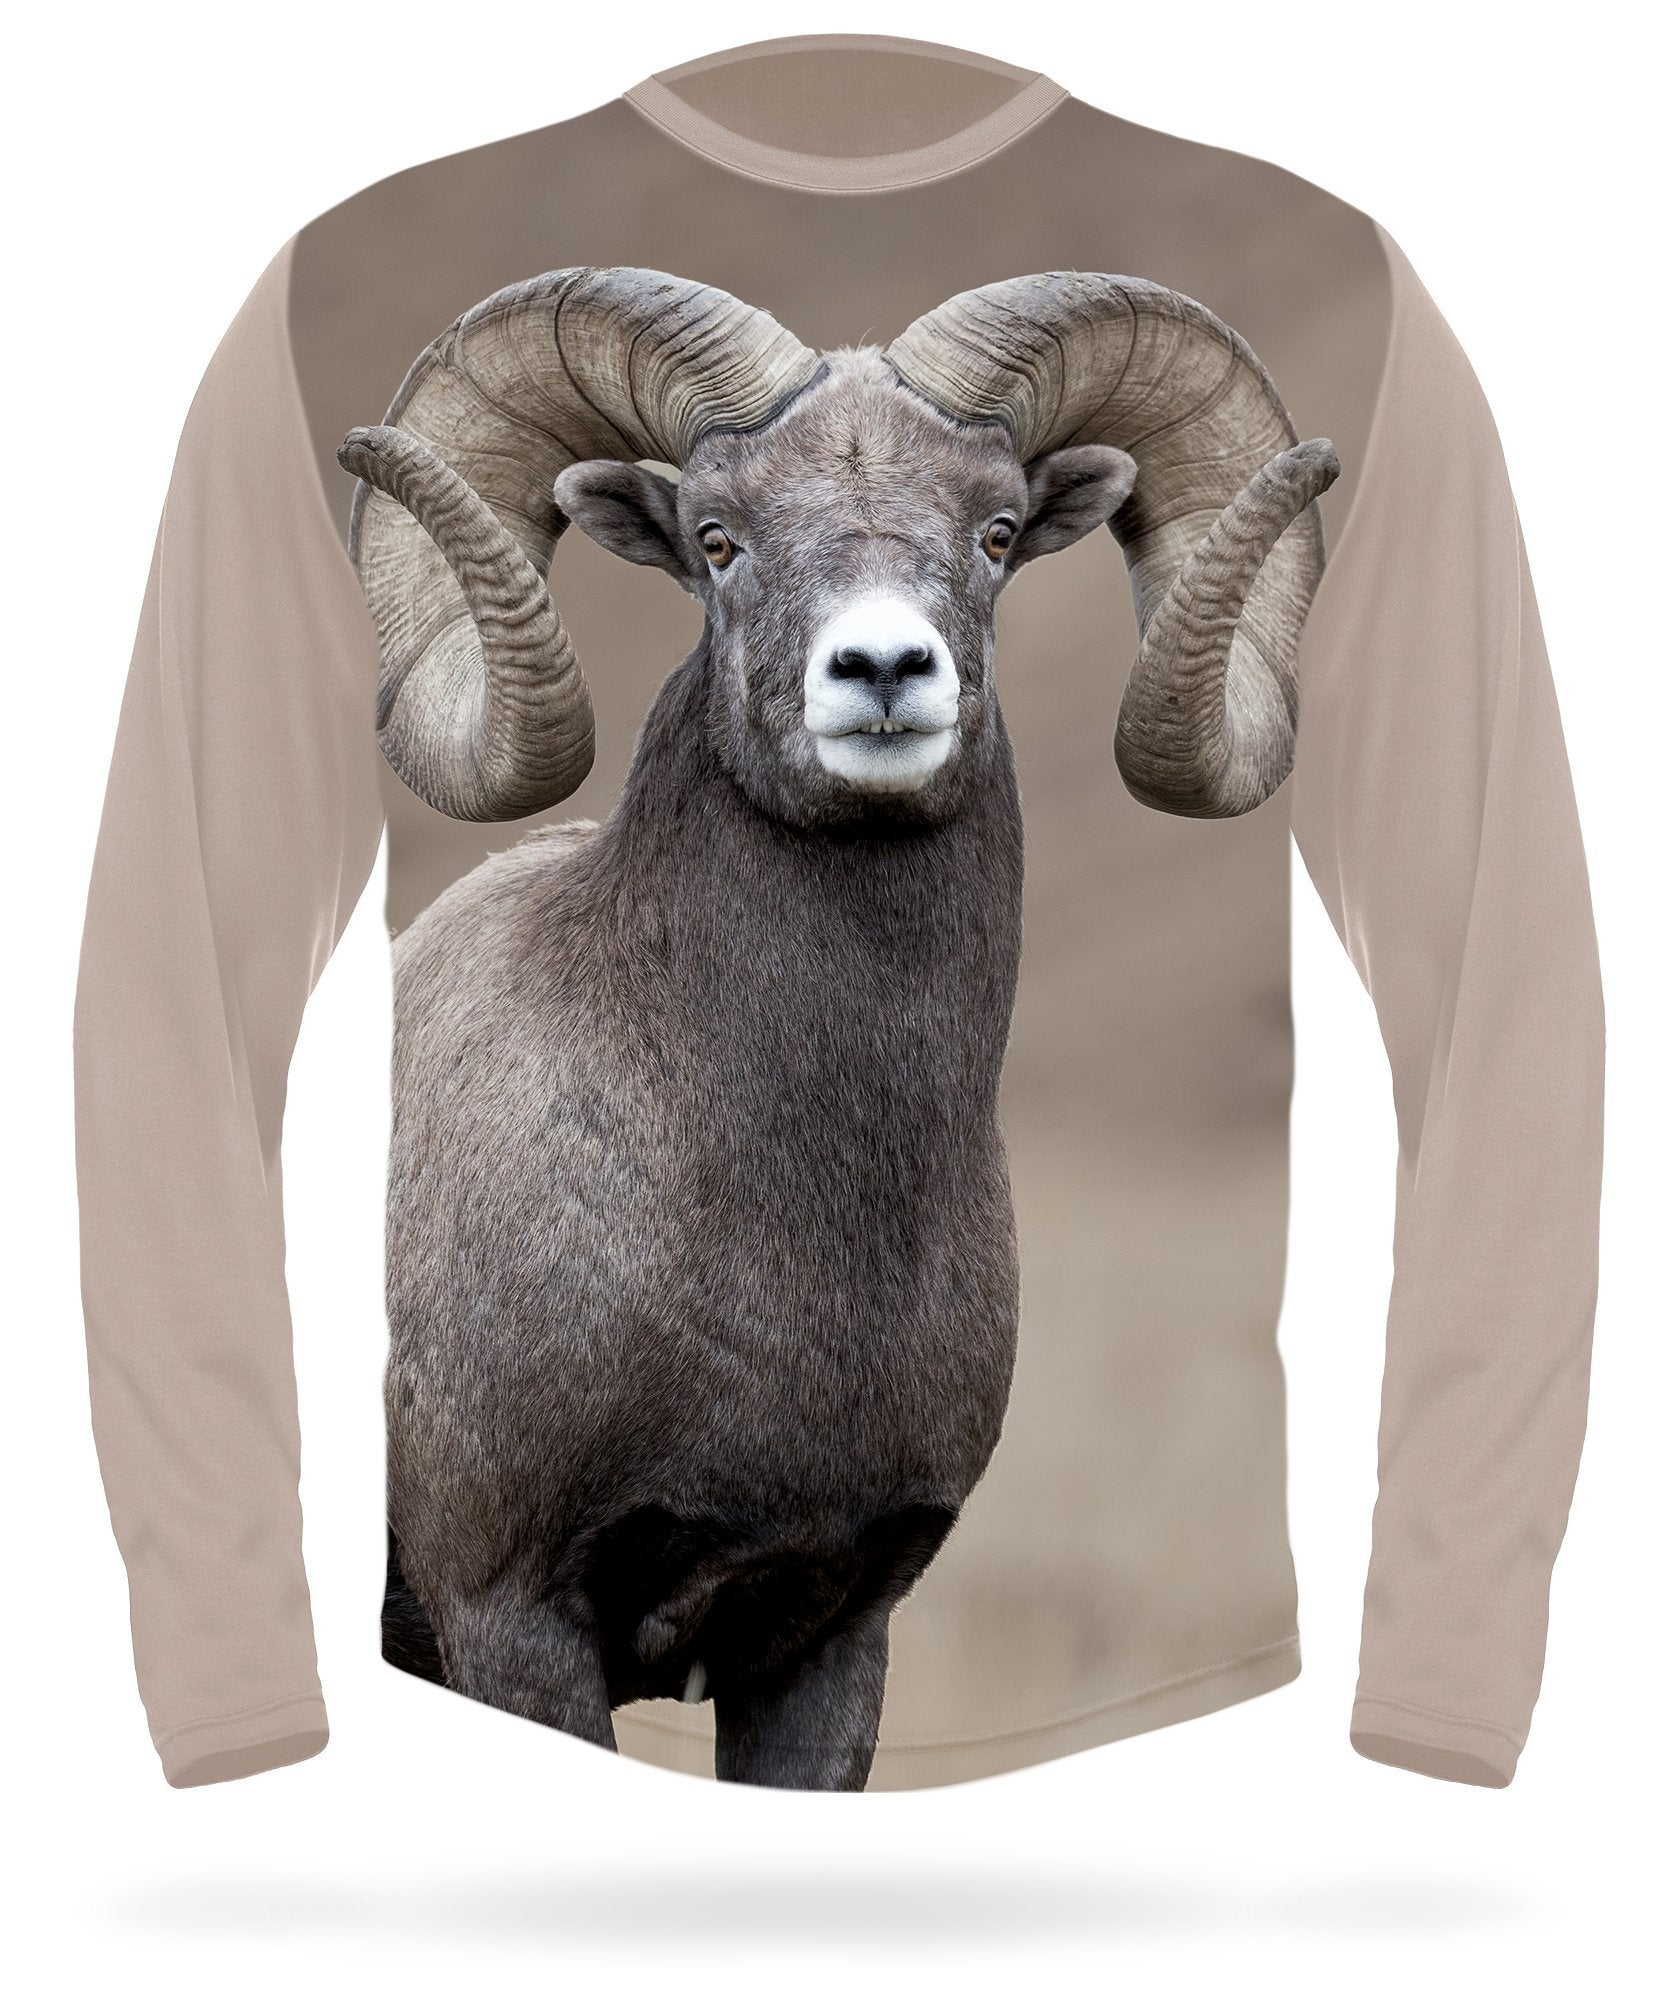 Bighorn Sheep T-Shirt - Long Sleeve